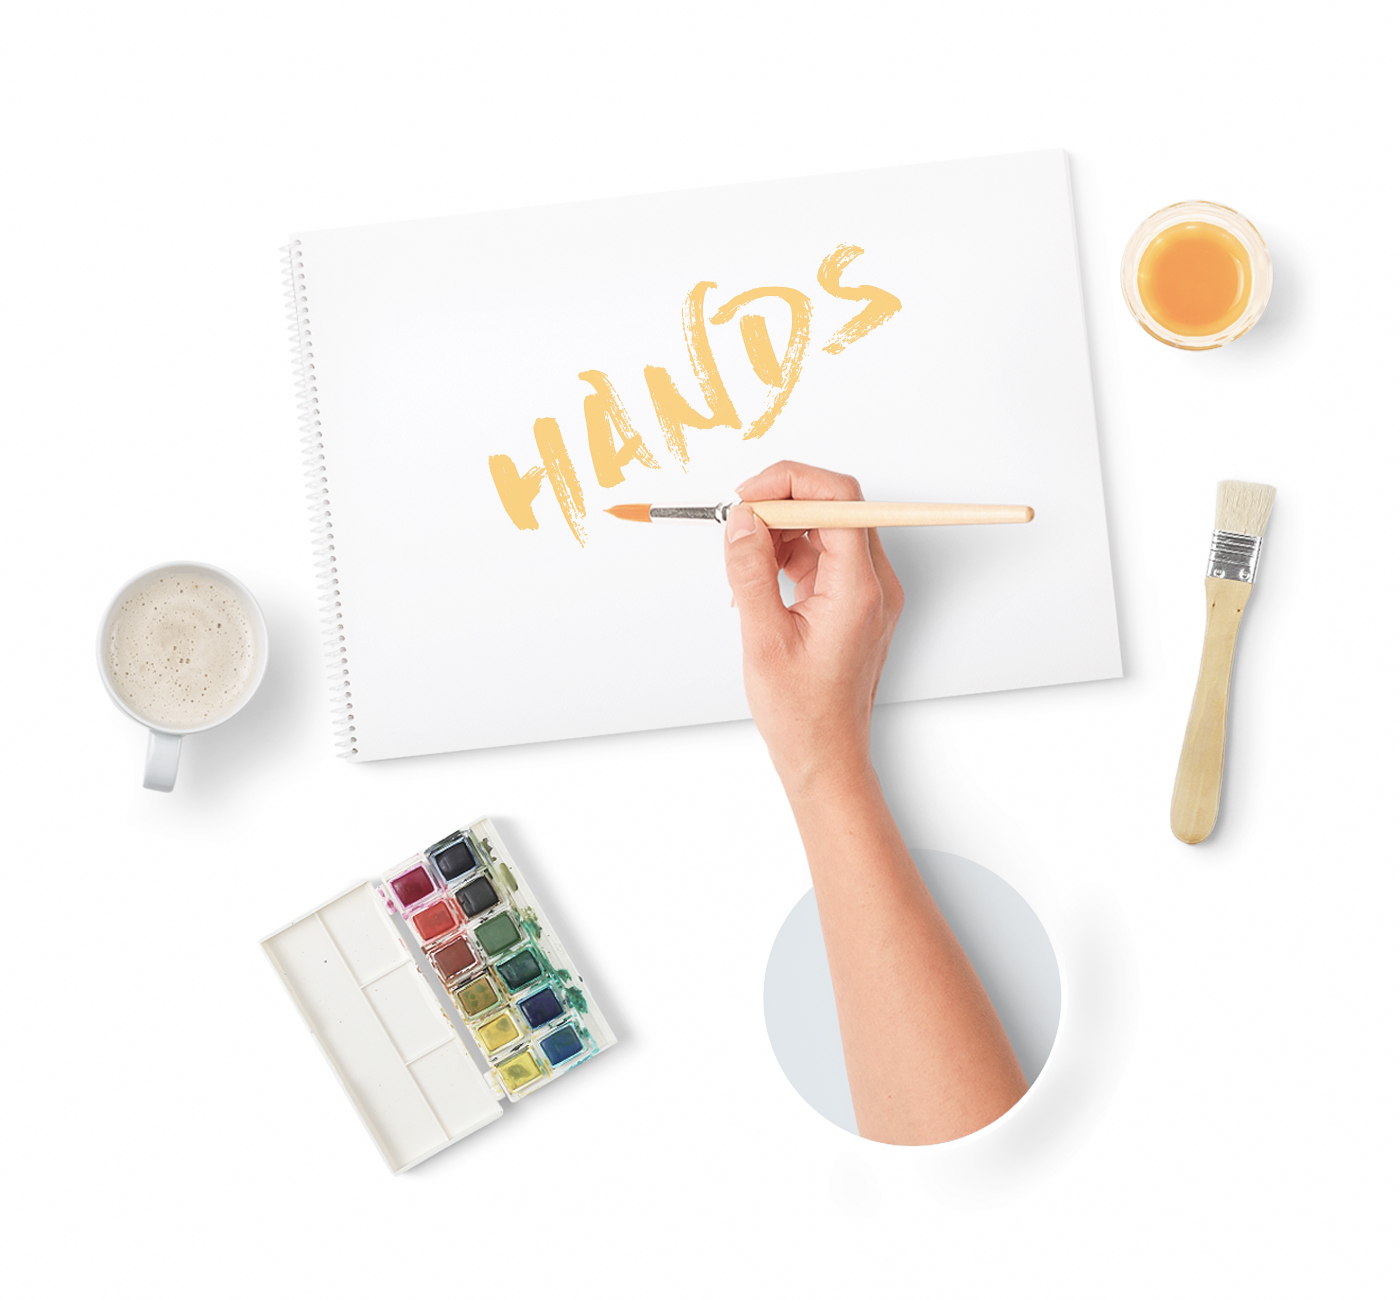 Hands On - If you want to show your artwork while creating it, you can use man or woman hands. While painting with brush, working on Macbook, playing with iPhone. Choose your hand and go on.Full Preview